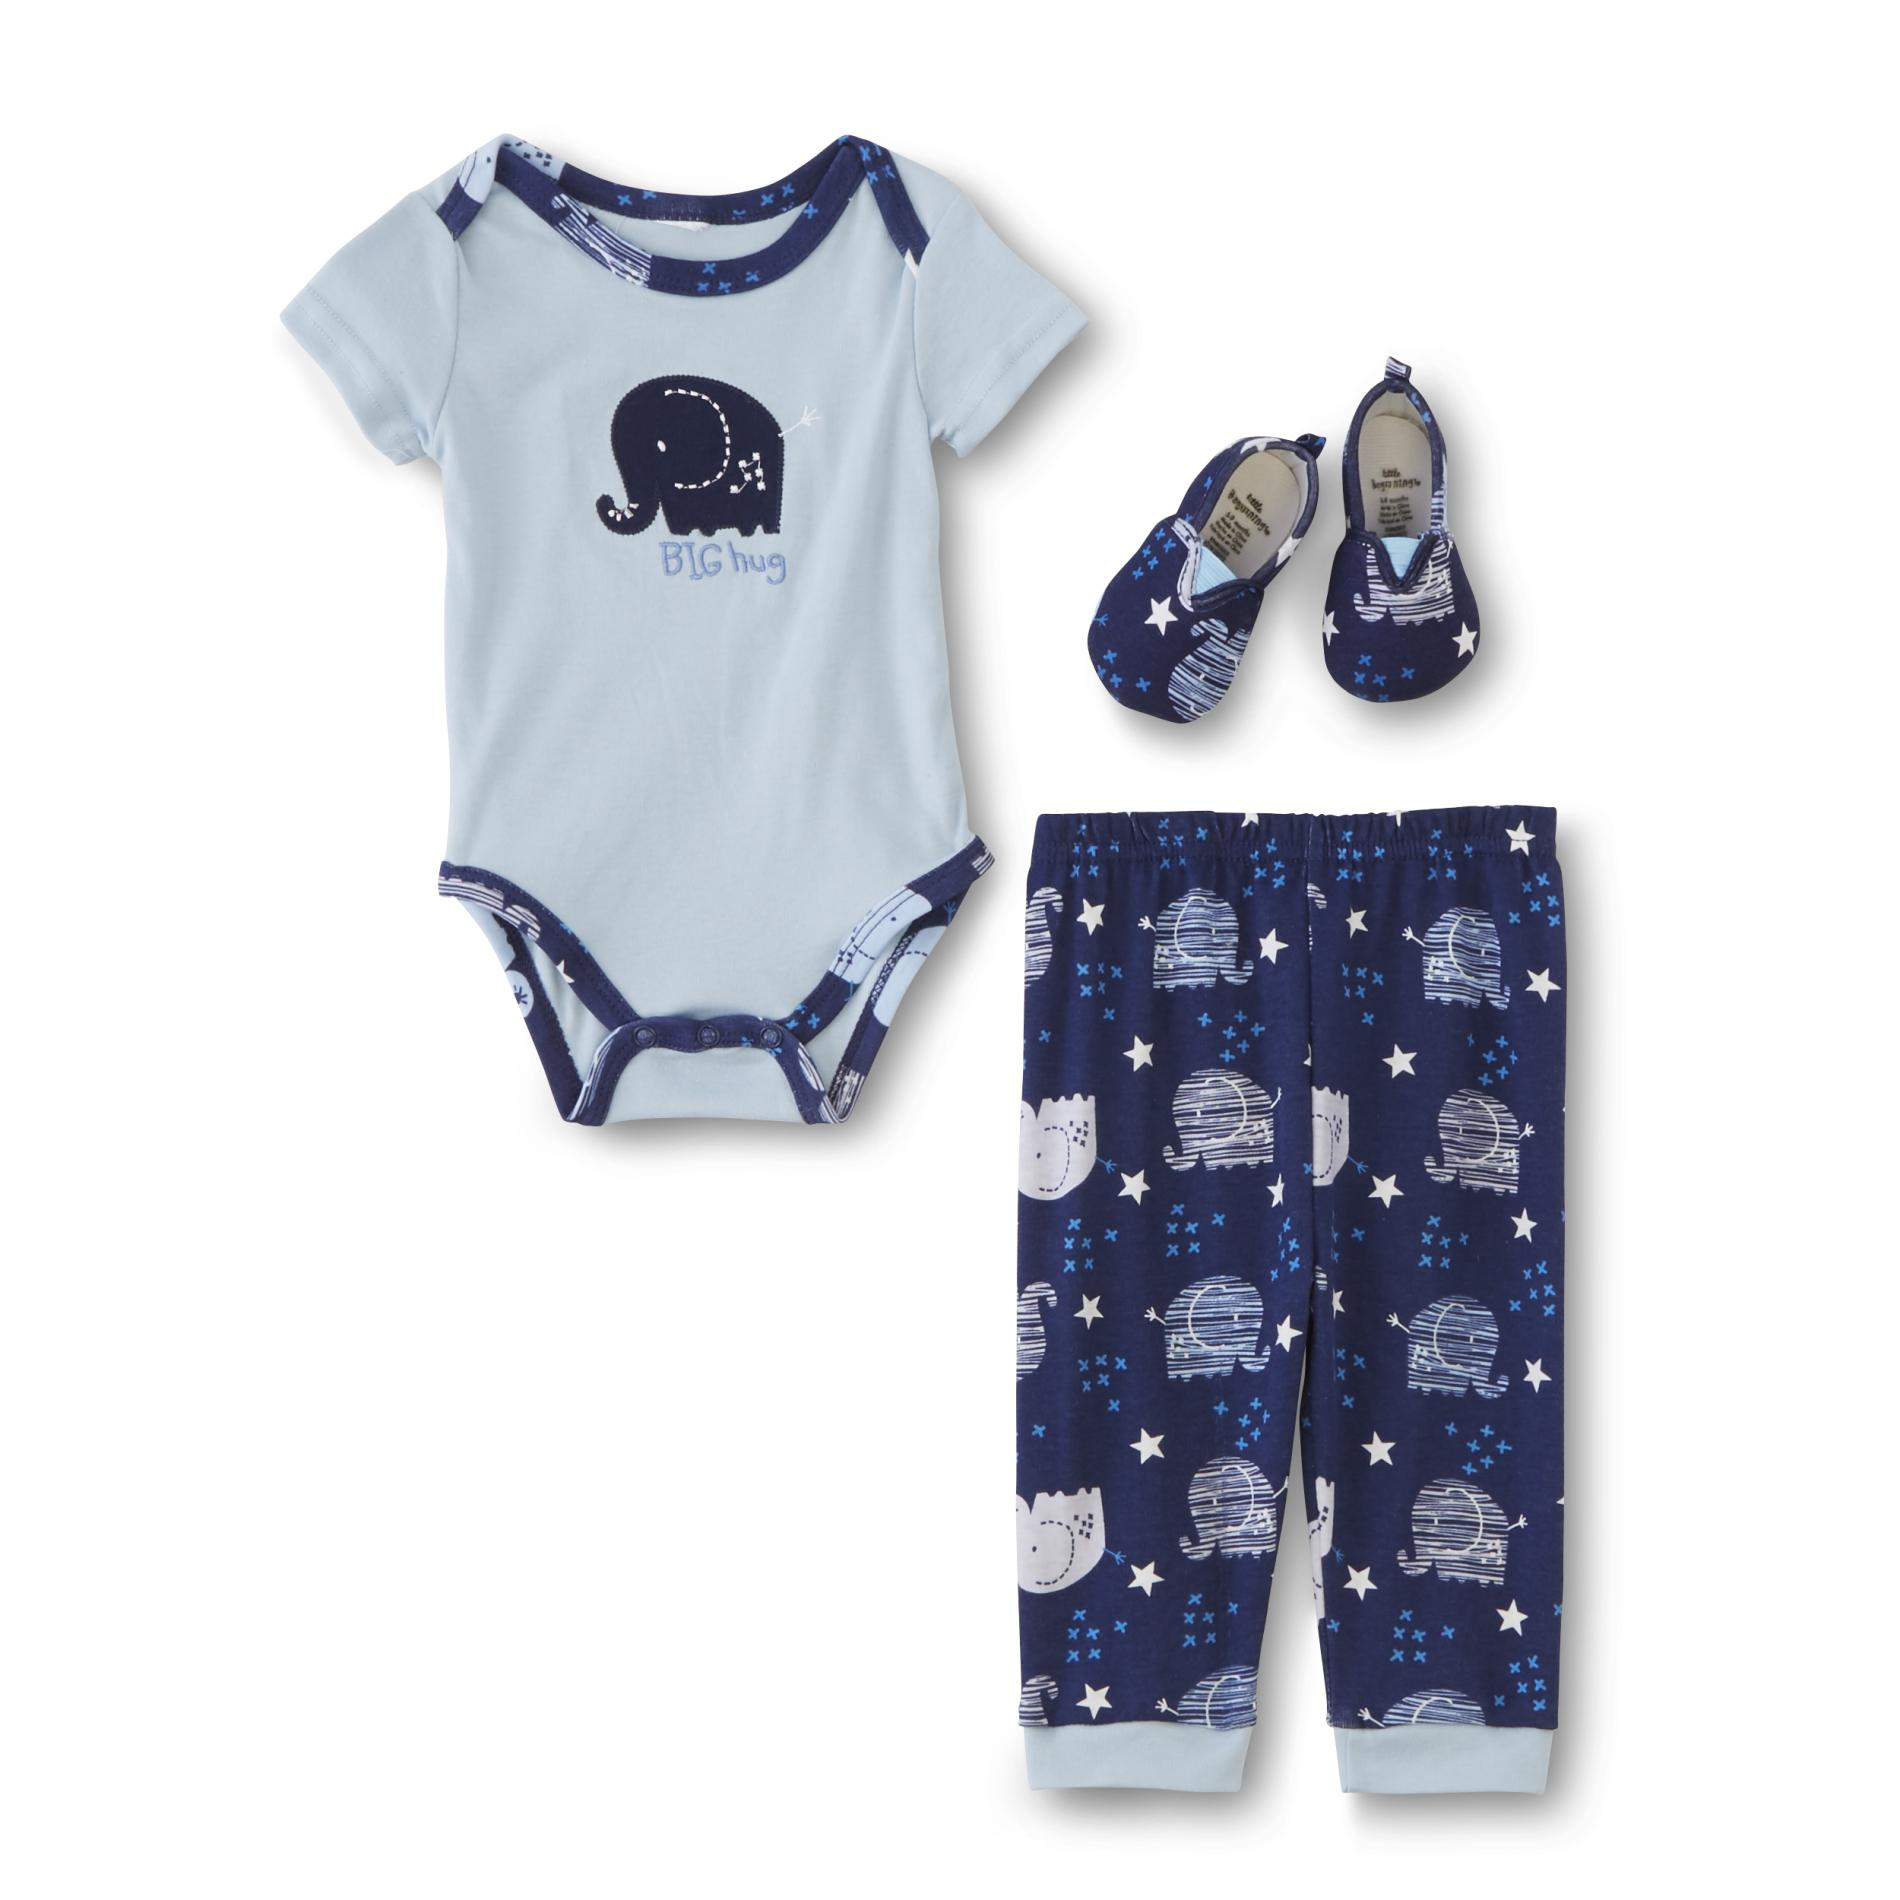 Baby Clothing Sets Boys Sears